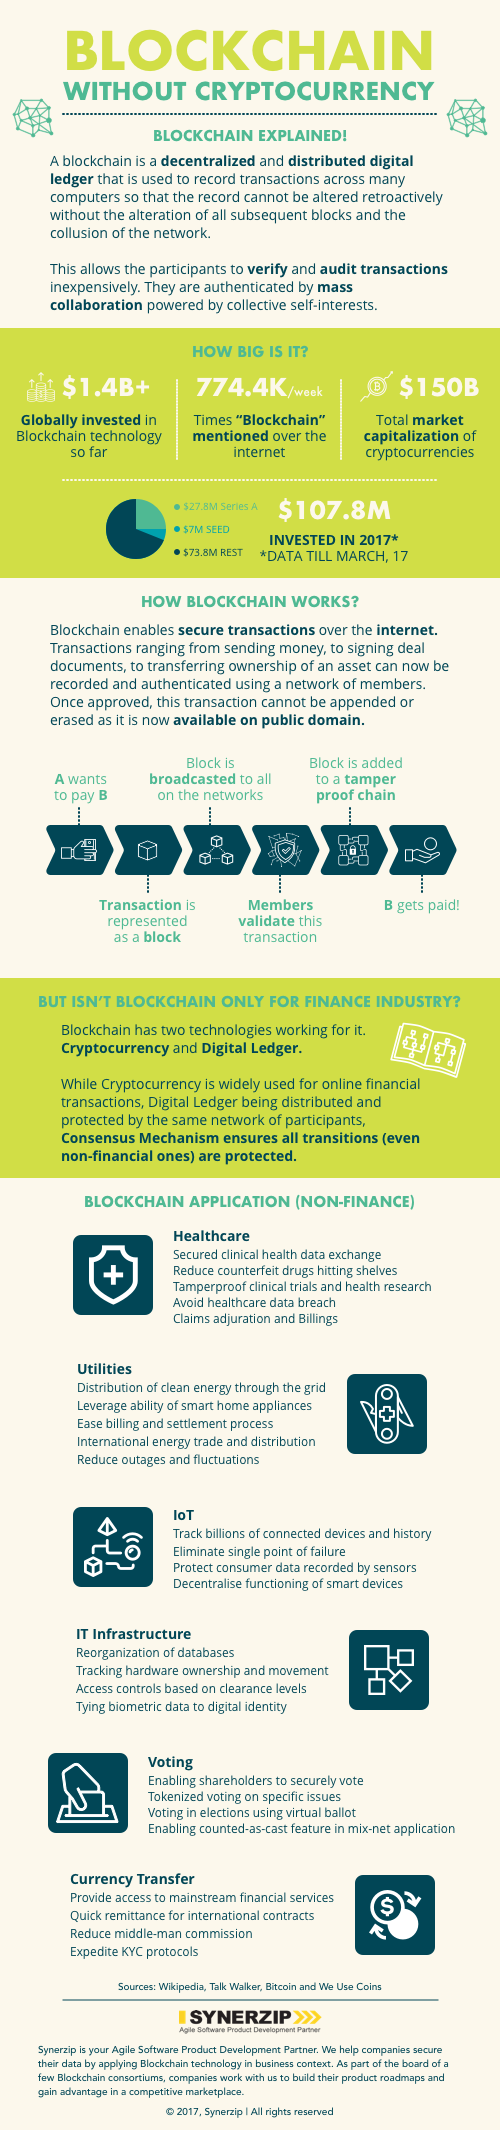 Blockchain Without Cryptocurrency